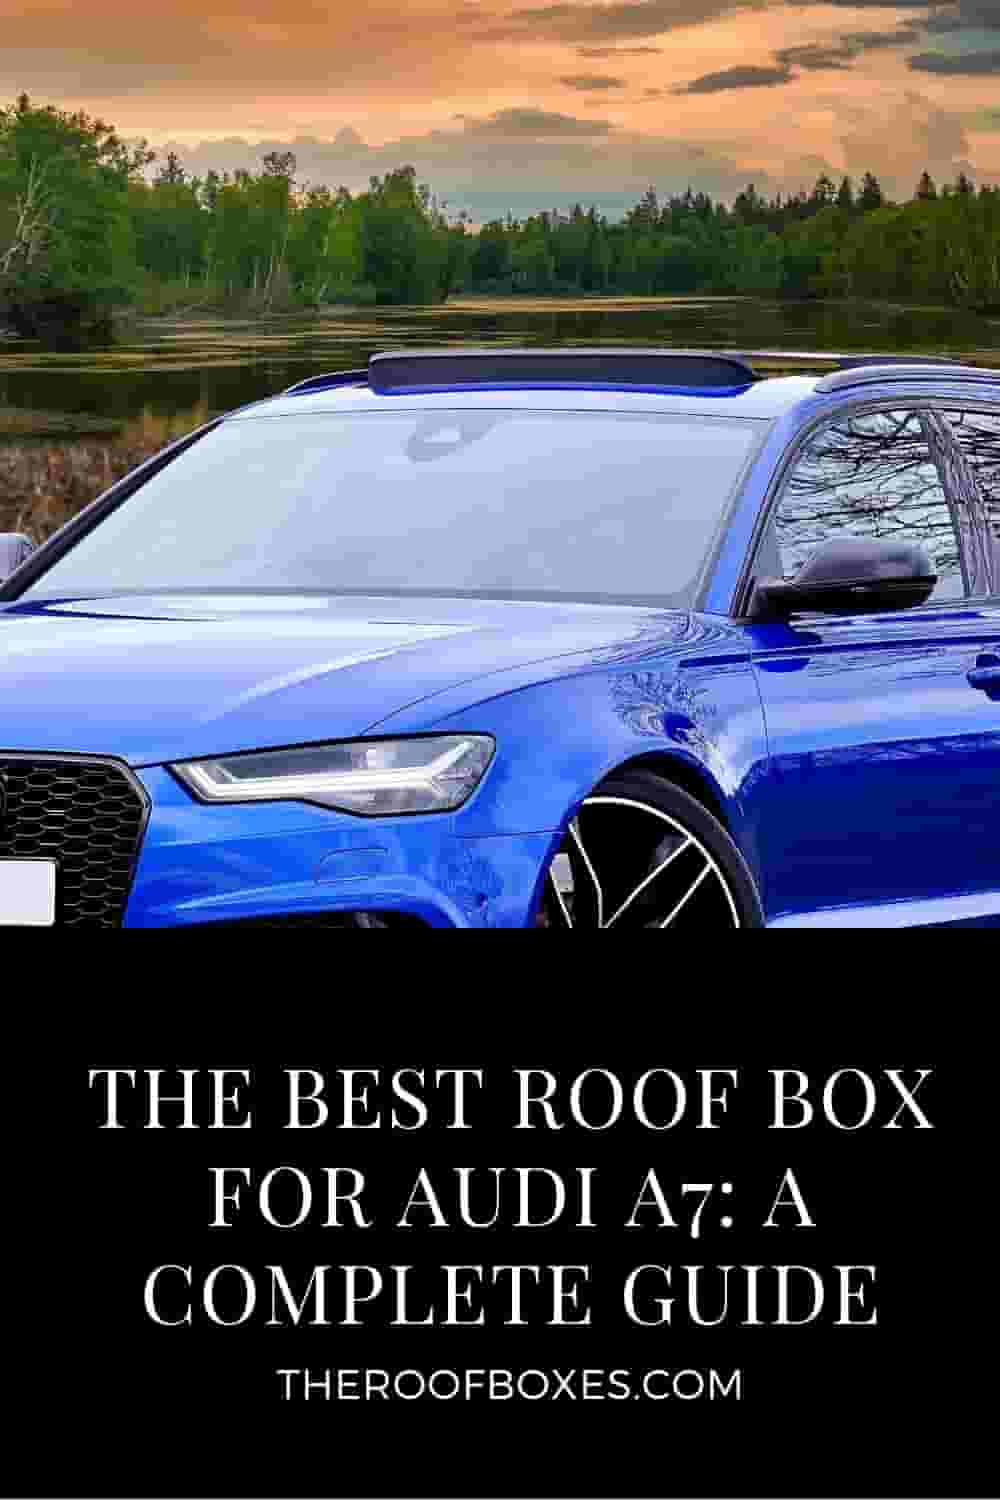 Roof Box for Audi A7 – Reviews and Comparison